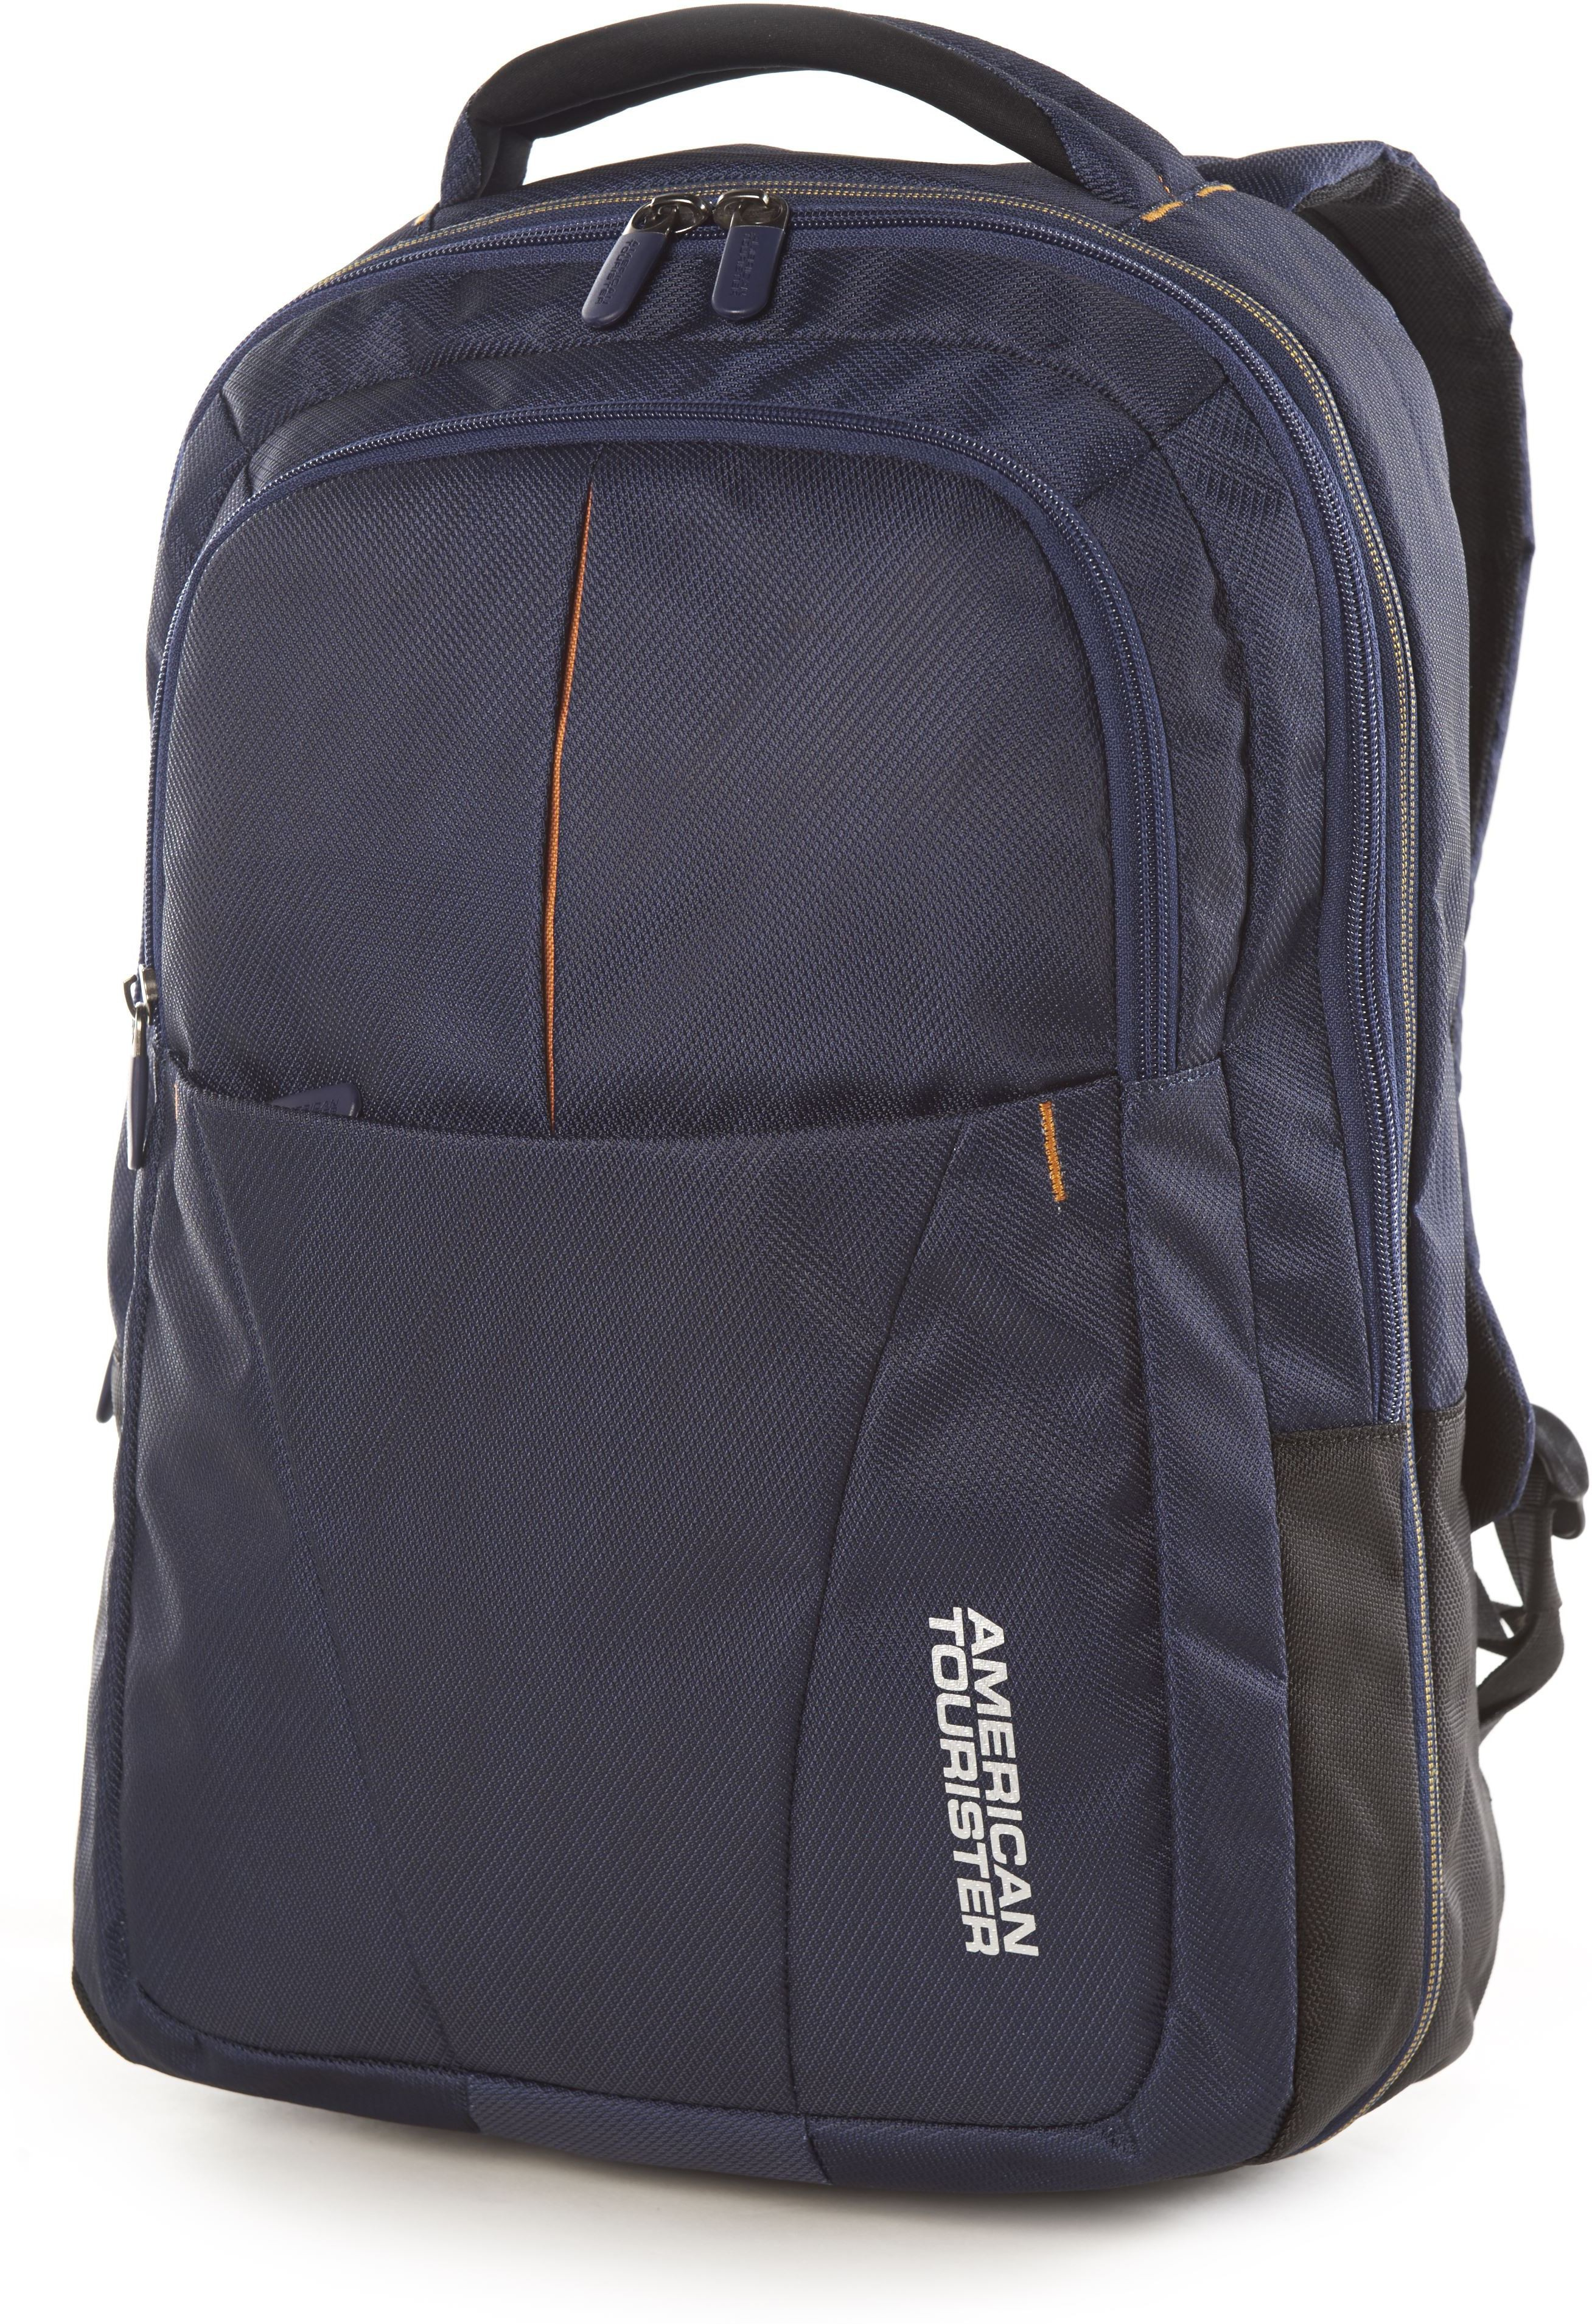 0802f37521 American Tourister Citi - Pro 2015 CT 03 Backpack